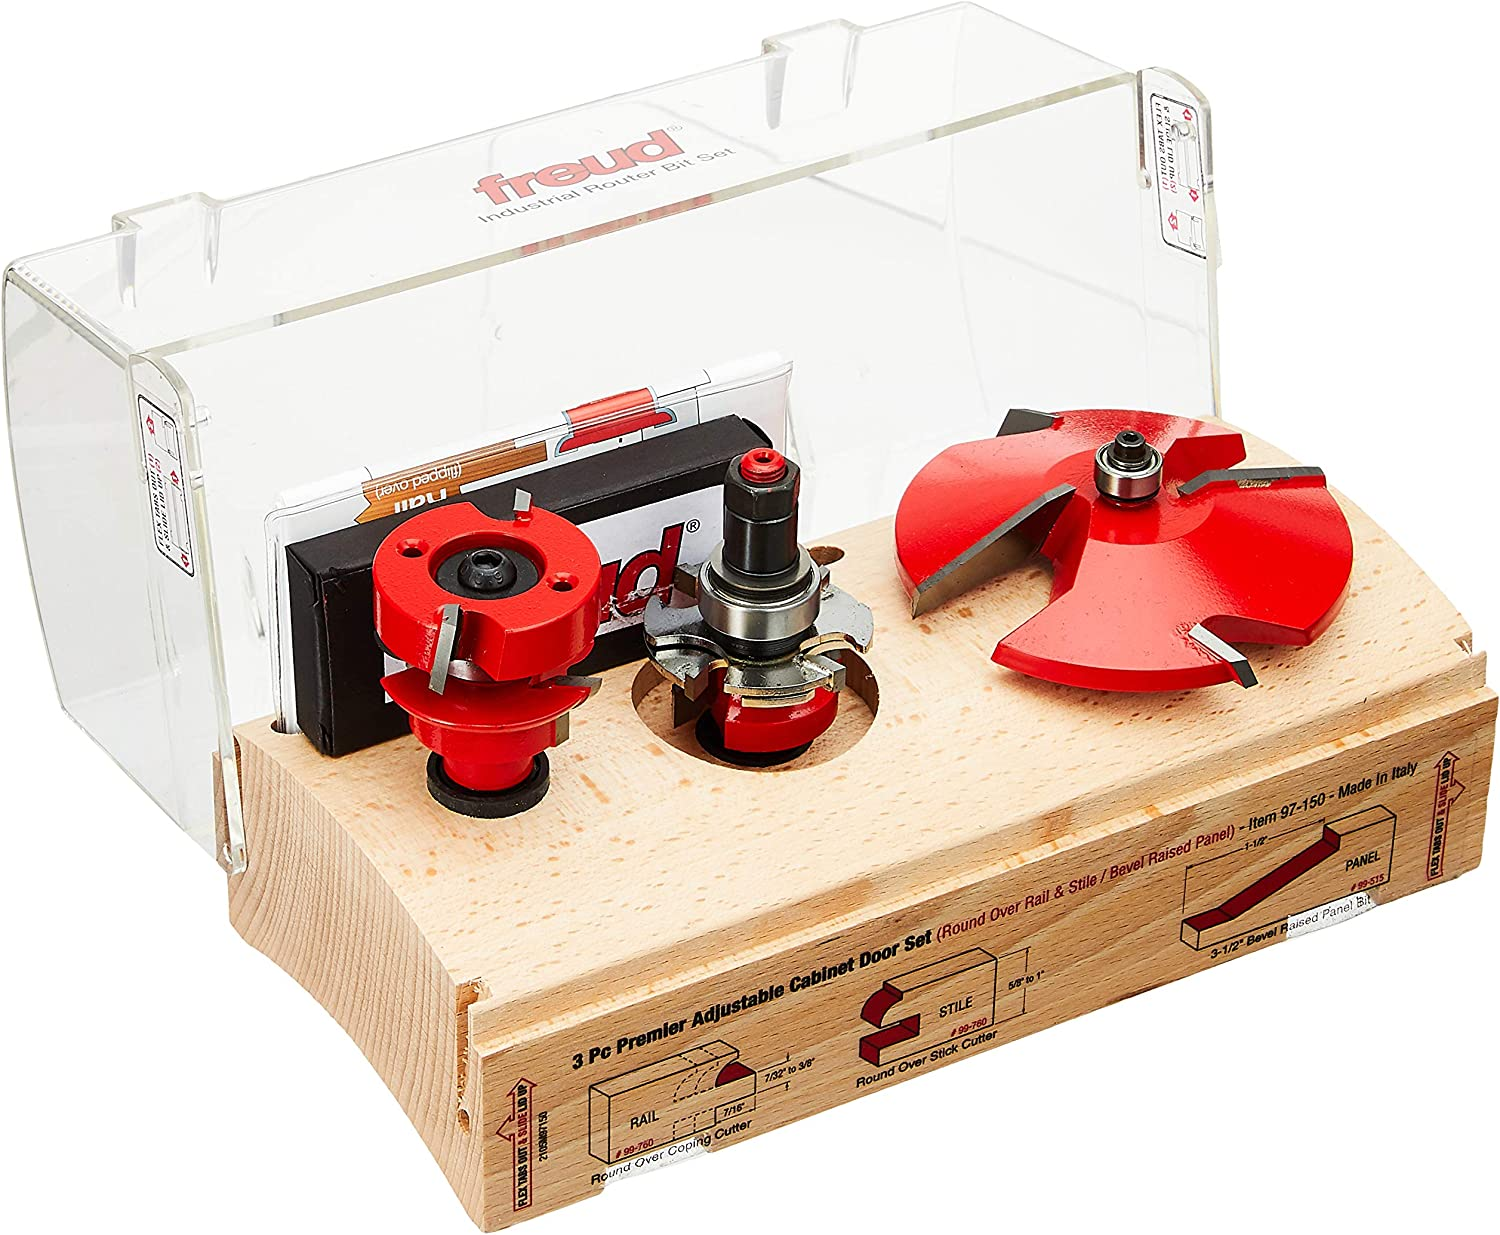 Home Xpert Drehfix Screw-Top Opener up to /Ã/ƒ/Â/˜ 10/Ã/'/Â/ Various Colours Red by homeXpert